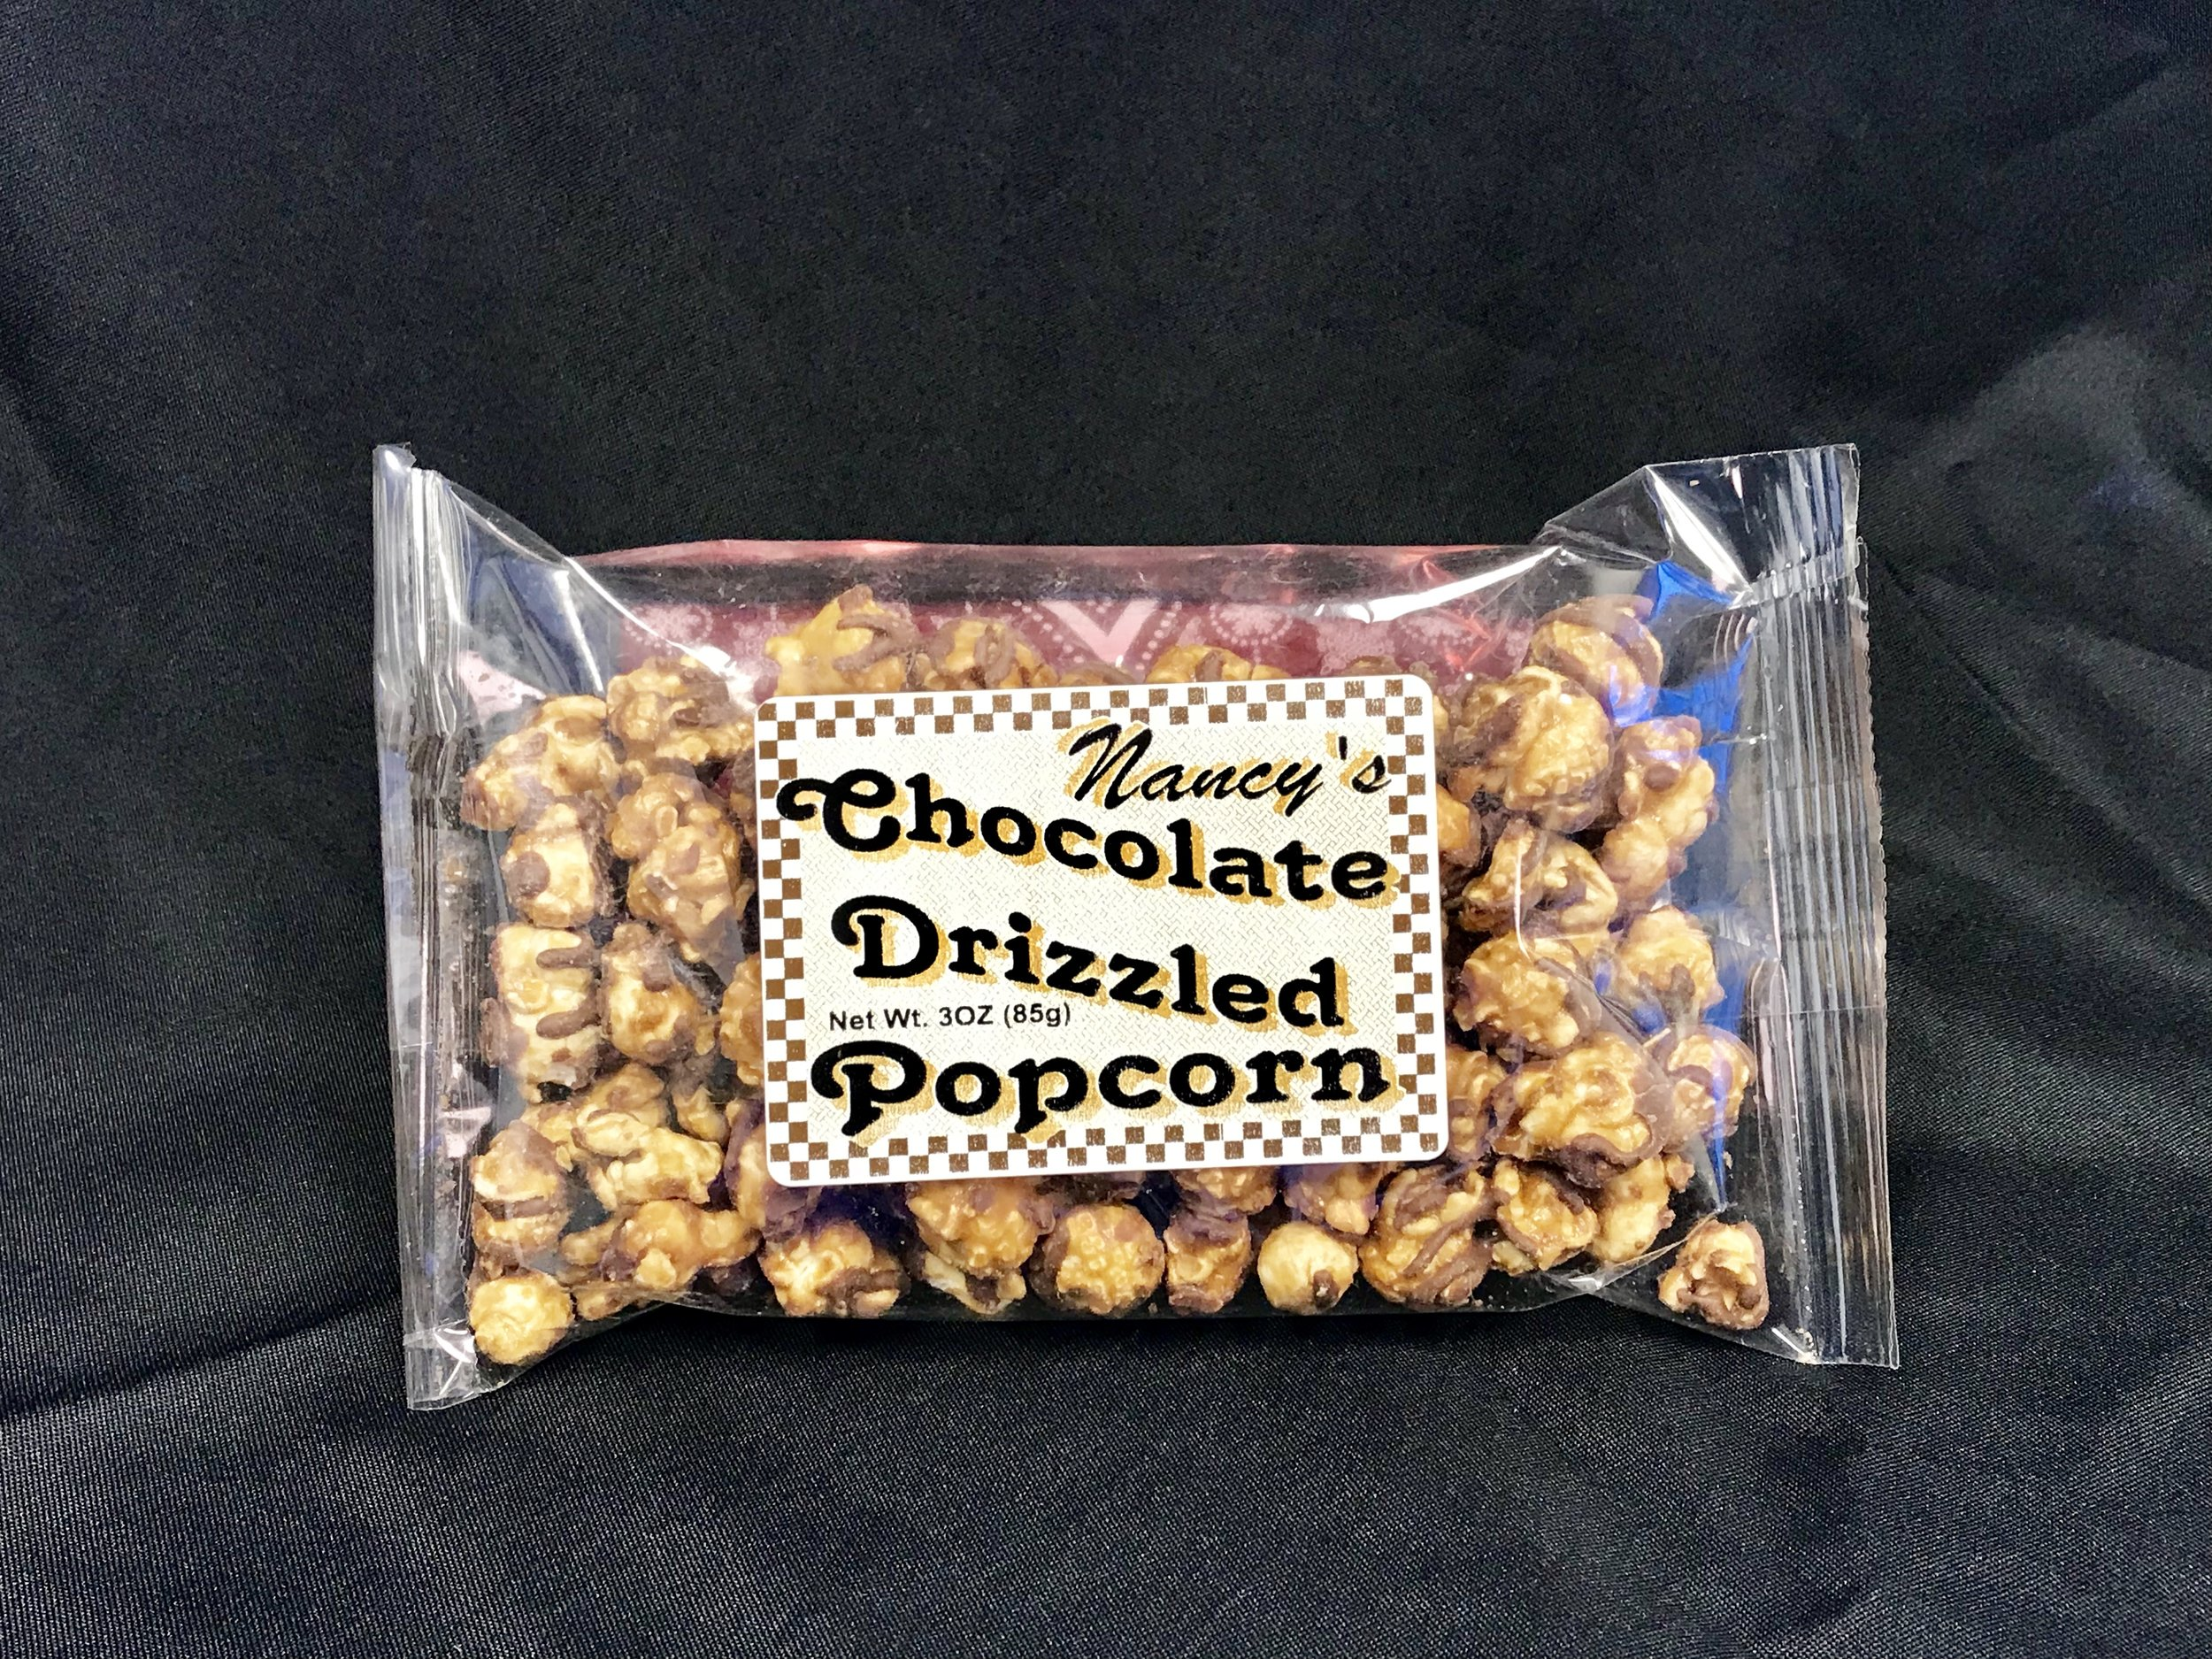 Milk Chocolate Drizzled Caramel Corn - 3 oz bag of delicious caramel popcorn drizzled with creamy milk chocolate. So delicious and makes the perfect holiday gift!